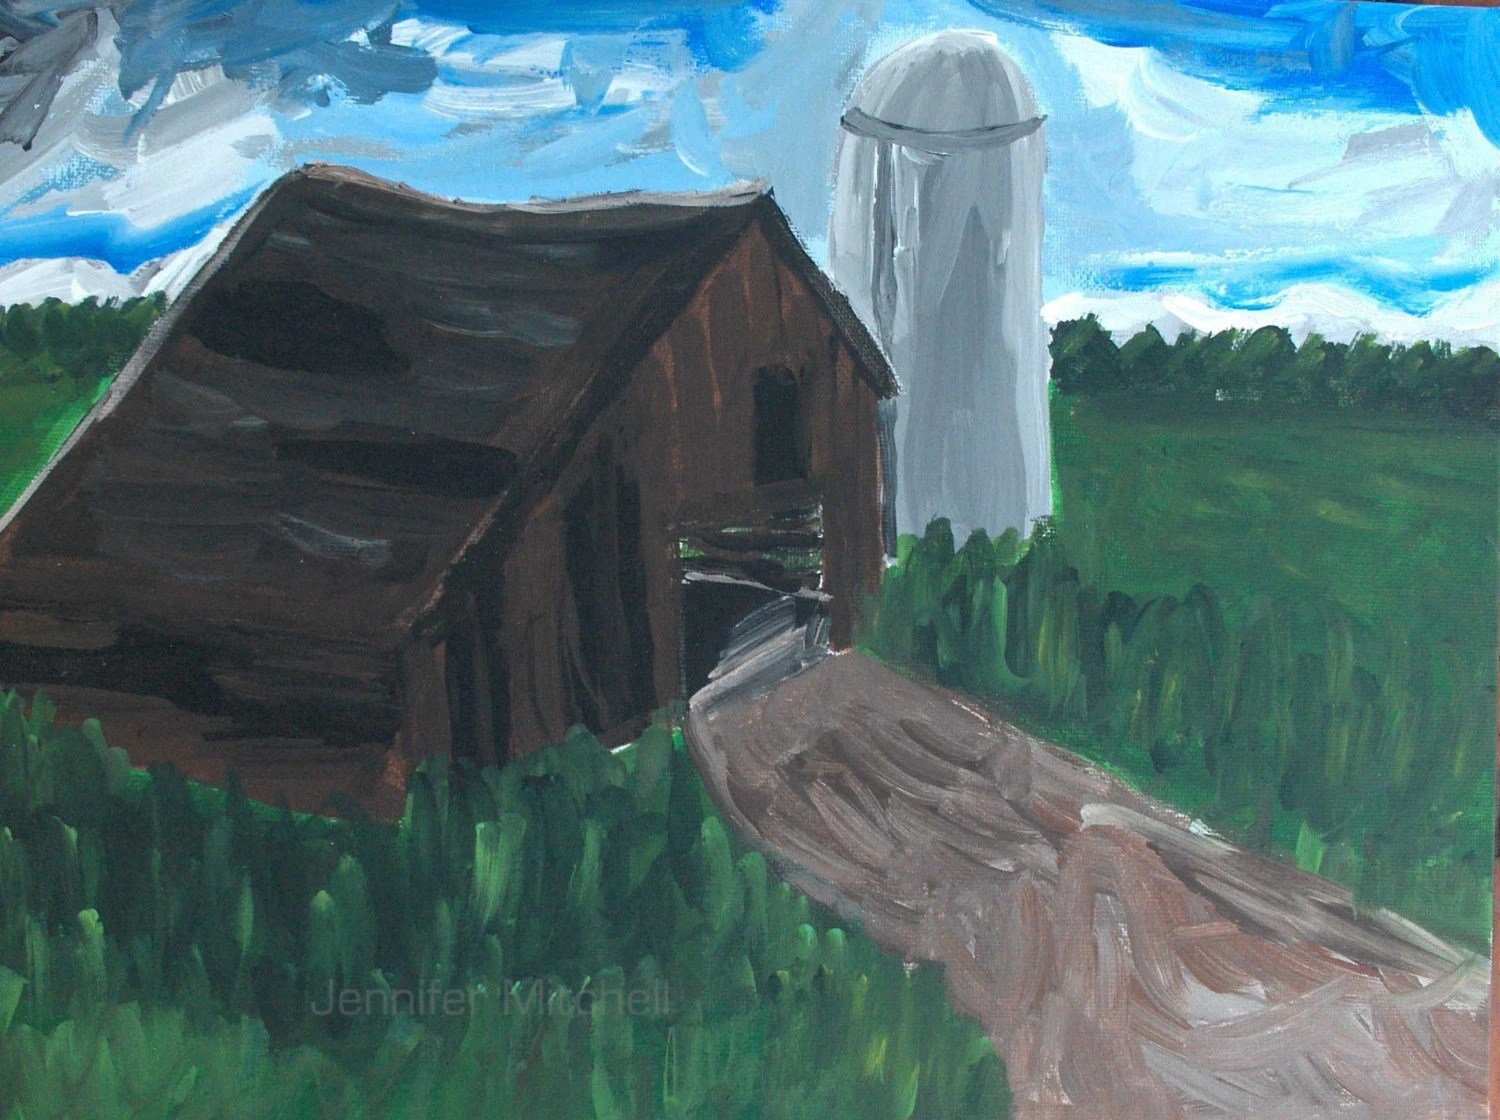 Jensywensy created this original acrylic painting, which captures some of the beauty in the American farm life.  See more of this Etsians work at http://www.etsy.com/shop.php?user_id=7458499